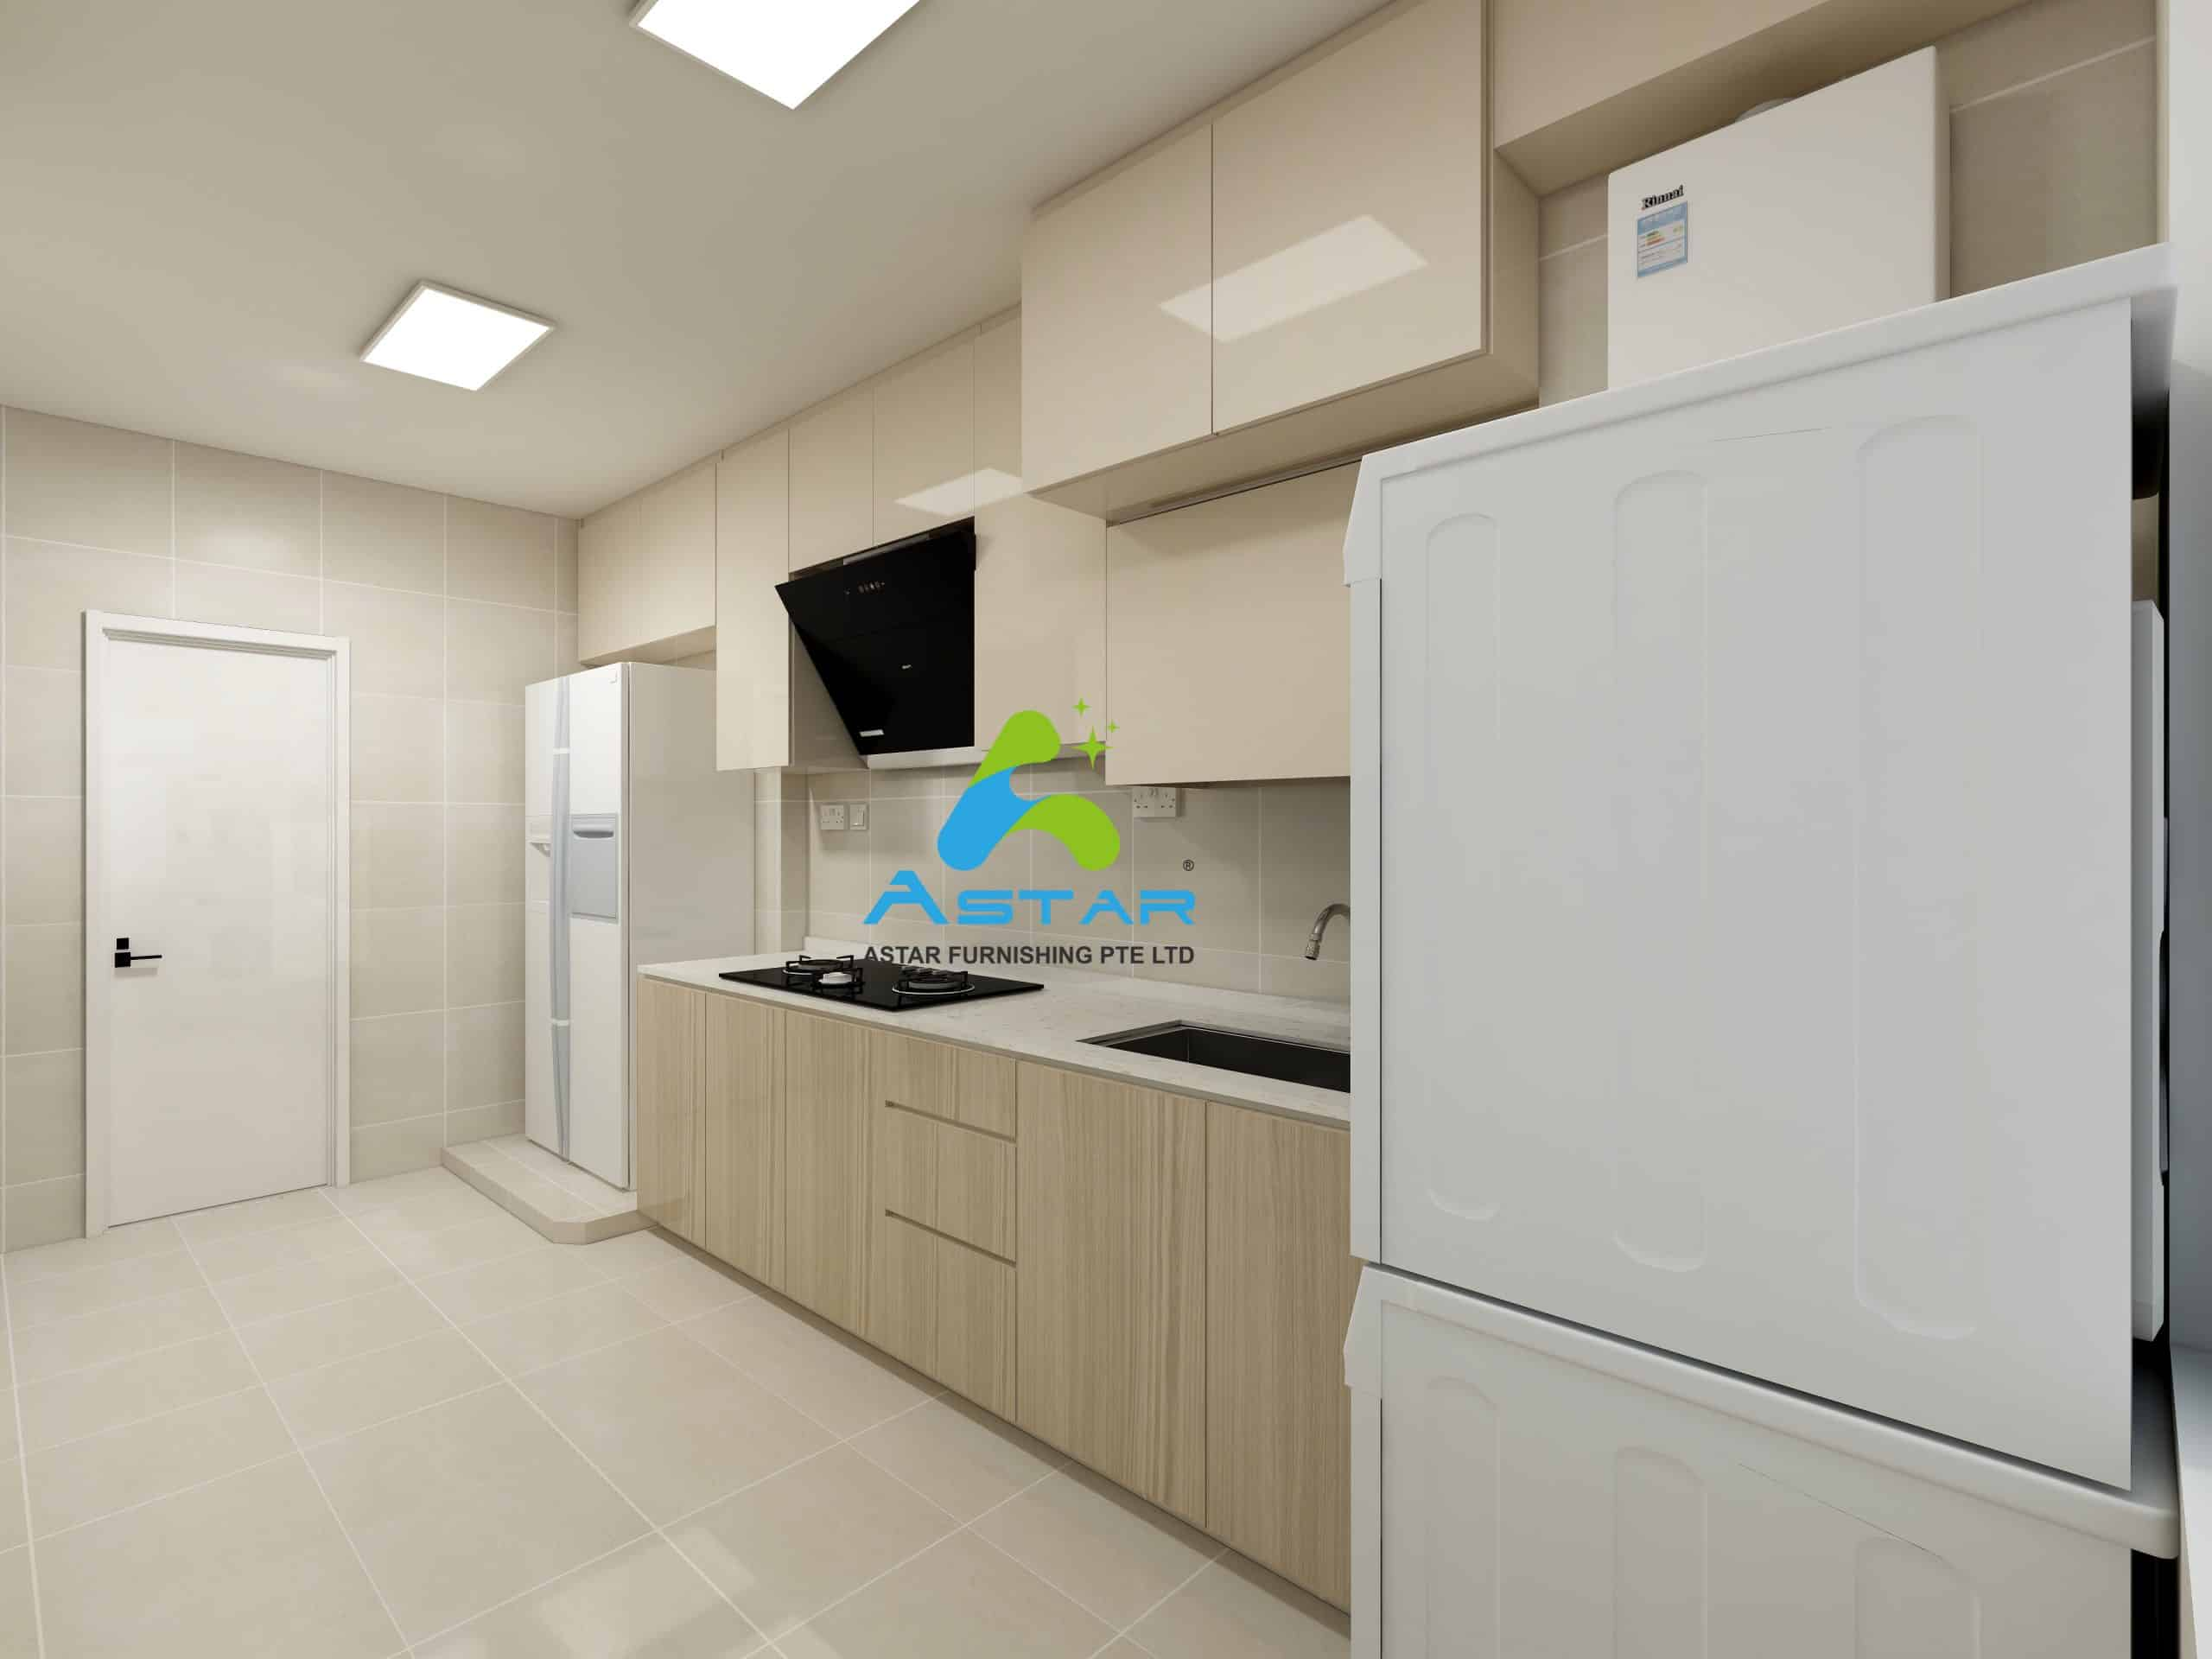 a star furnishing aluminium projects 13. Blk 466A Sembawang Drive 049 scaled